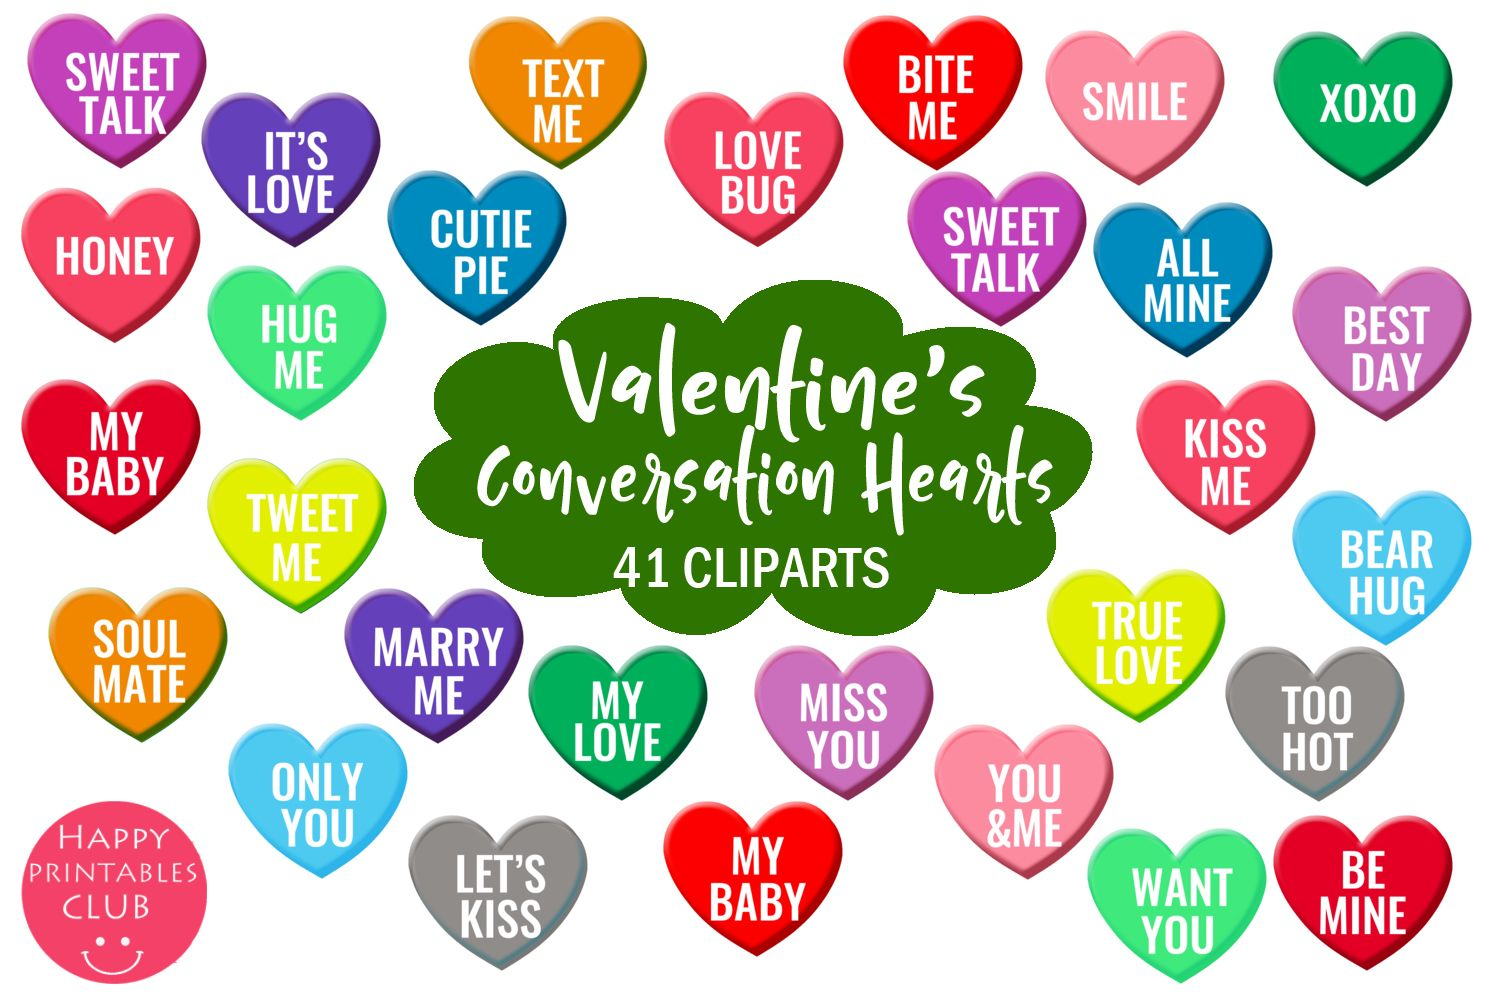 Valentine S Conversation Hearts Cliparts Graphic By